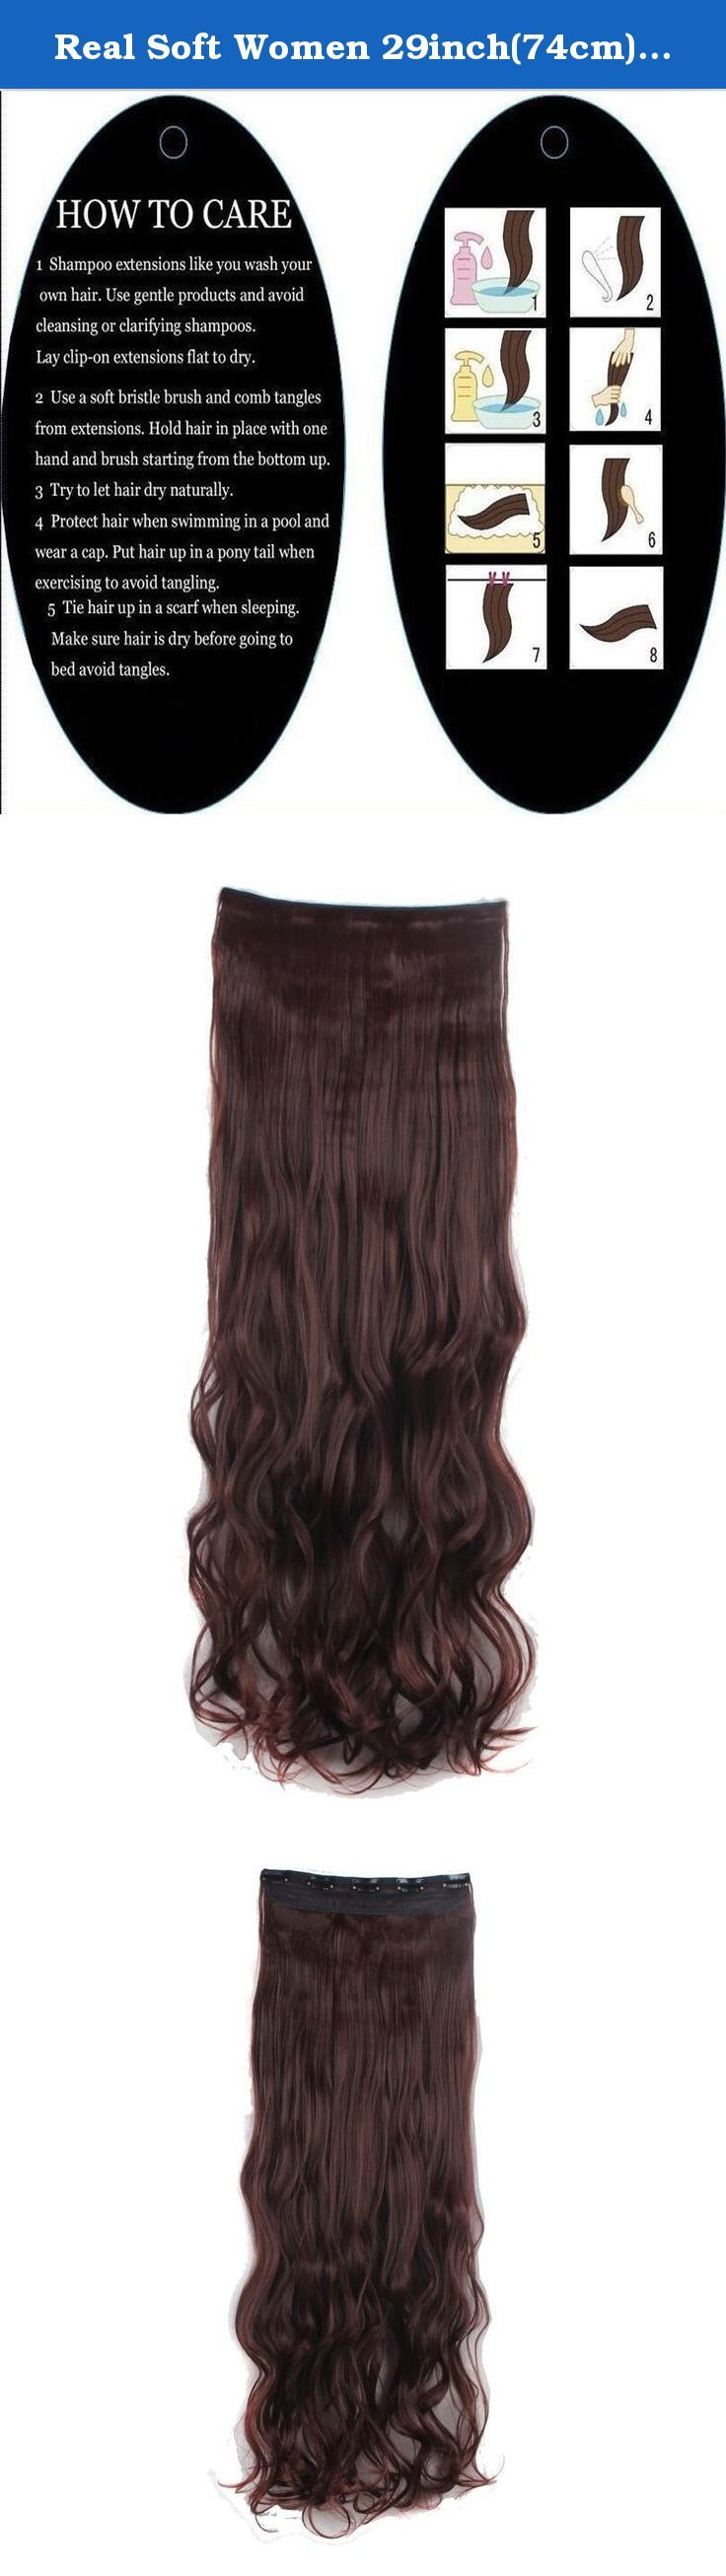 Real Soft Women 29inch(74cm) long wavy curly dark auburn hair 1Pc with 5Clips Half Full Head Clip In Hair Extension. Synthetic fiber moves and feels like real human hair. This is Most affordable price and very easy to apply. Several pressure sensitive clips make attaching quick and easy. The best hair extension shopping options based on the price compare to real human hair extensions. Also the best choice for short term or entry level using. Clips opening and closing instructions: With…